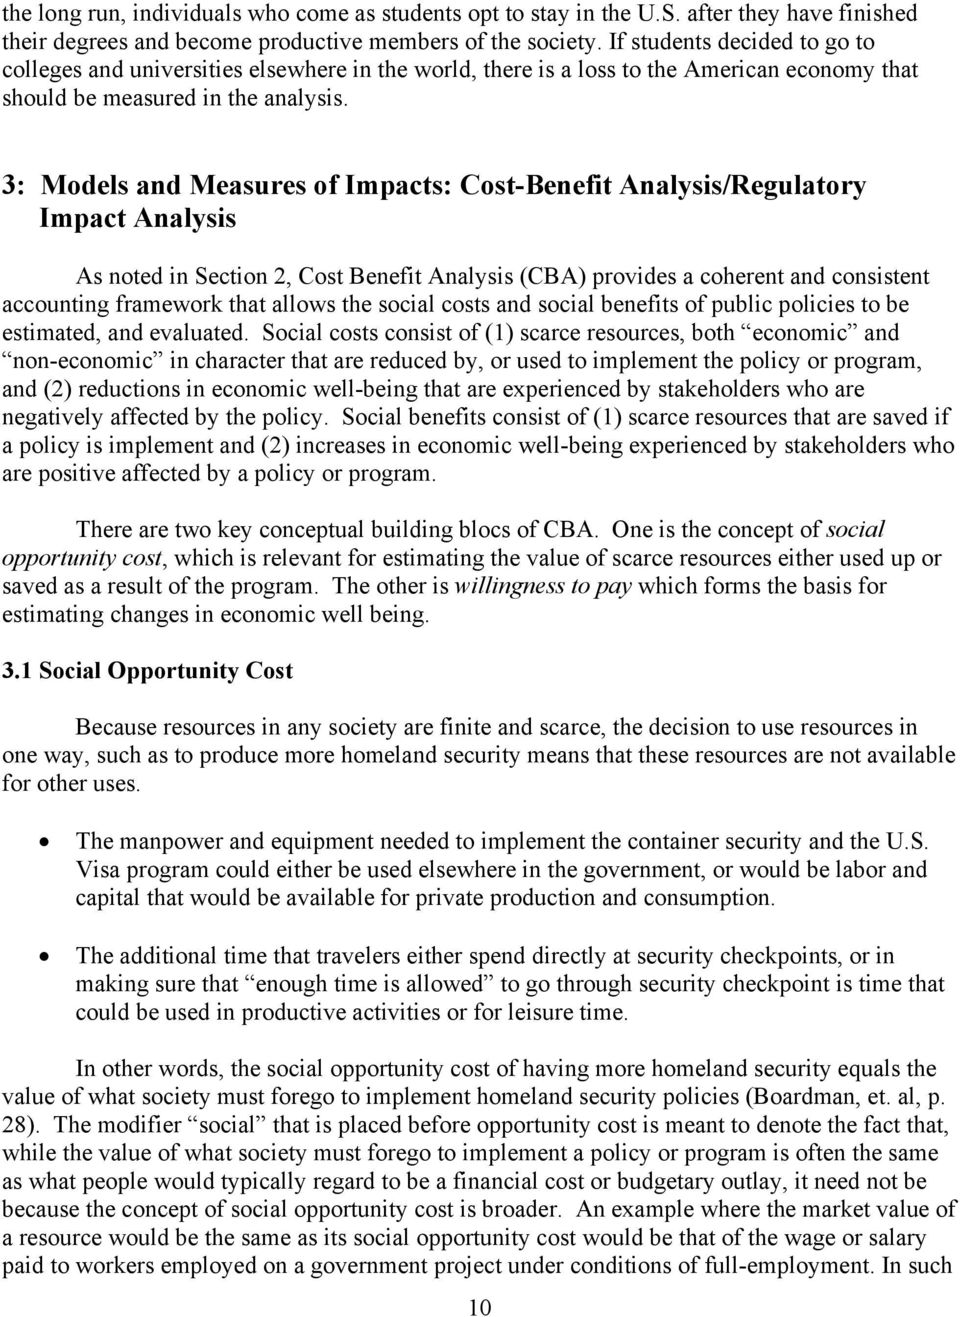 3: Models and Measures of Impacts: Cost-Benefit Analysis/Regulatory Impact Analysis As noted in Section 2, Cost Benefit Analysis (CBA) provides a coherent and consistent accounting framework that